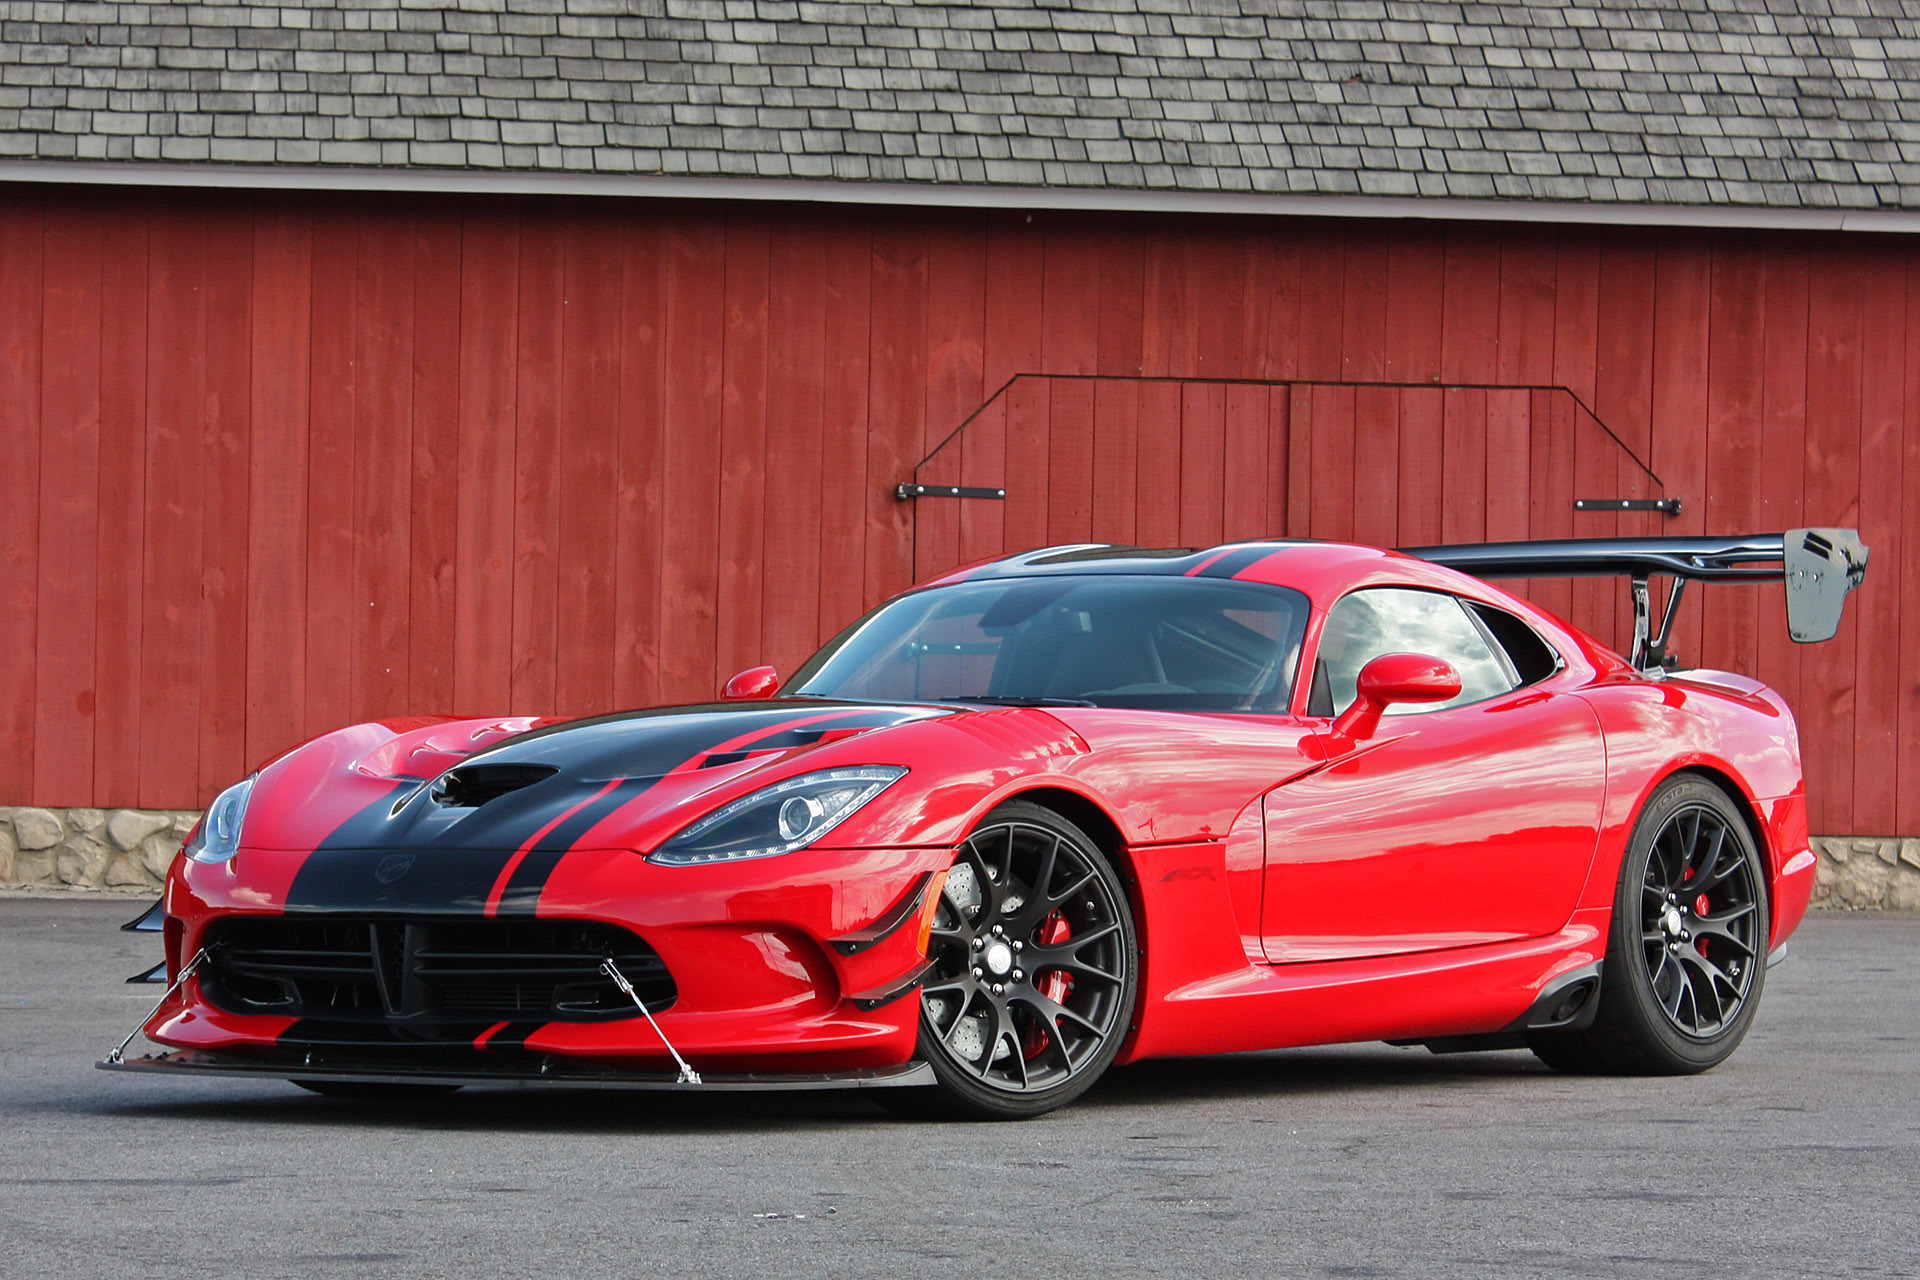 the 2016 dodge viper acr is here and it s downright intimidating 03 2016 dodge viper acr fd 1